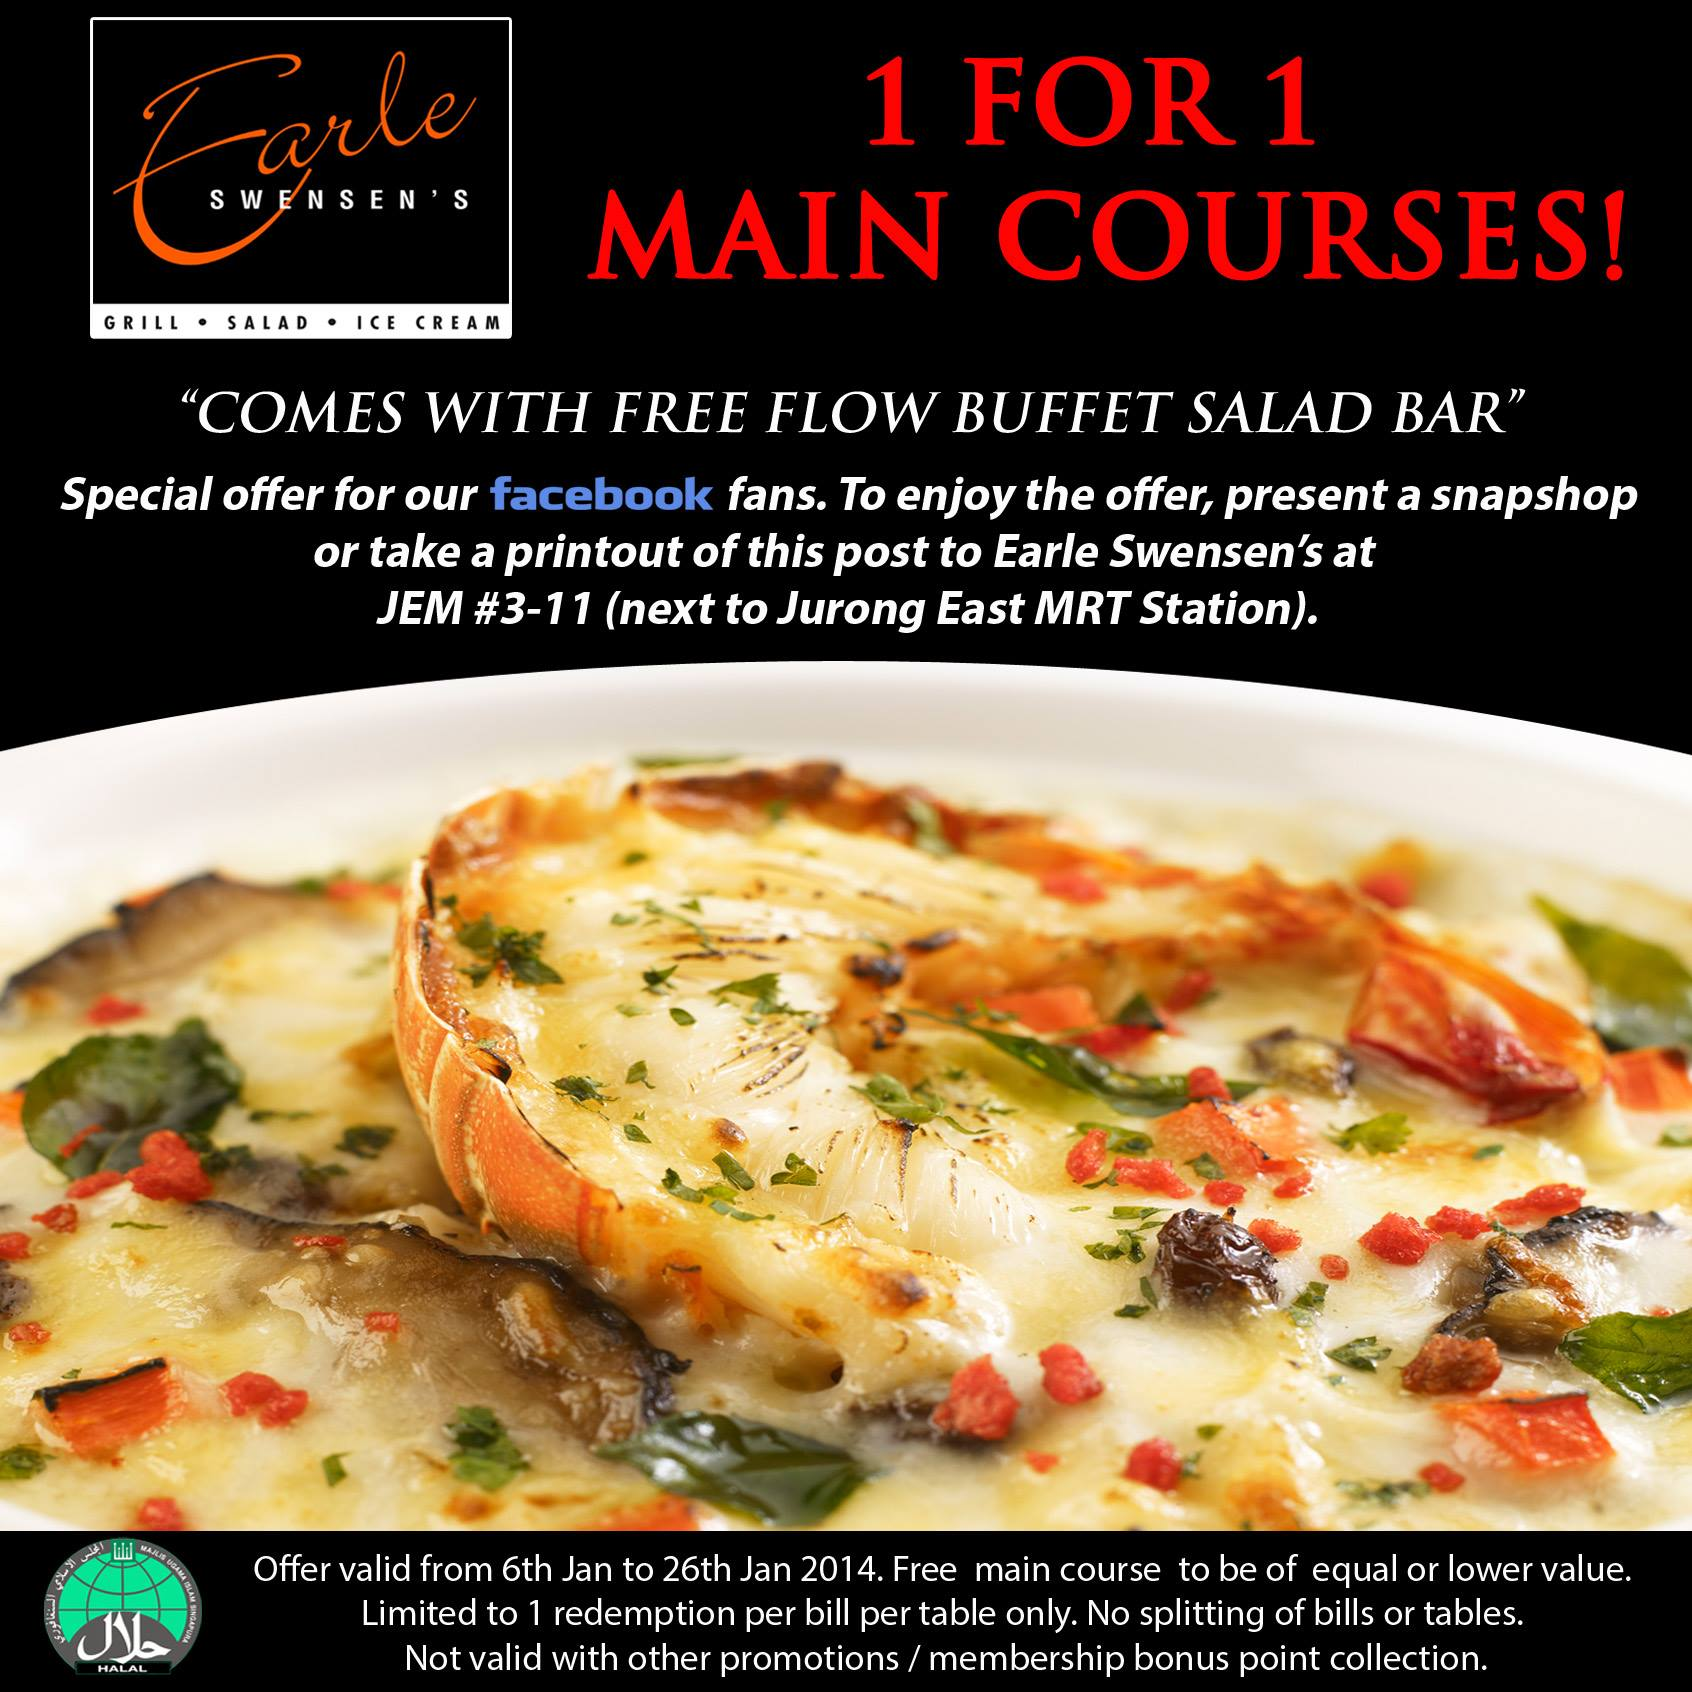 Earle Swensen's 1-For-1 Main Course January 2014 Promotion Comes With Free Flow Buffet Salad Bar